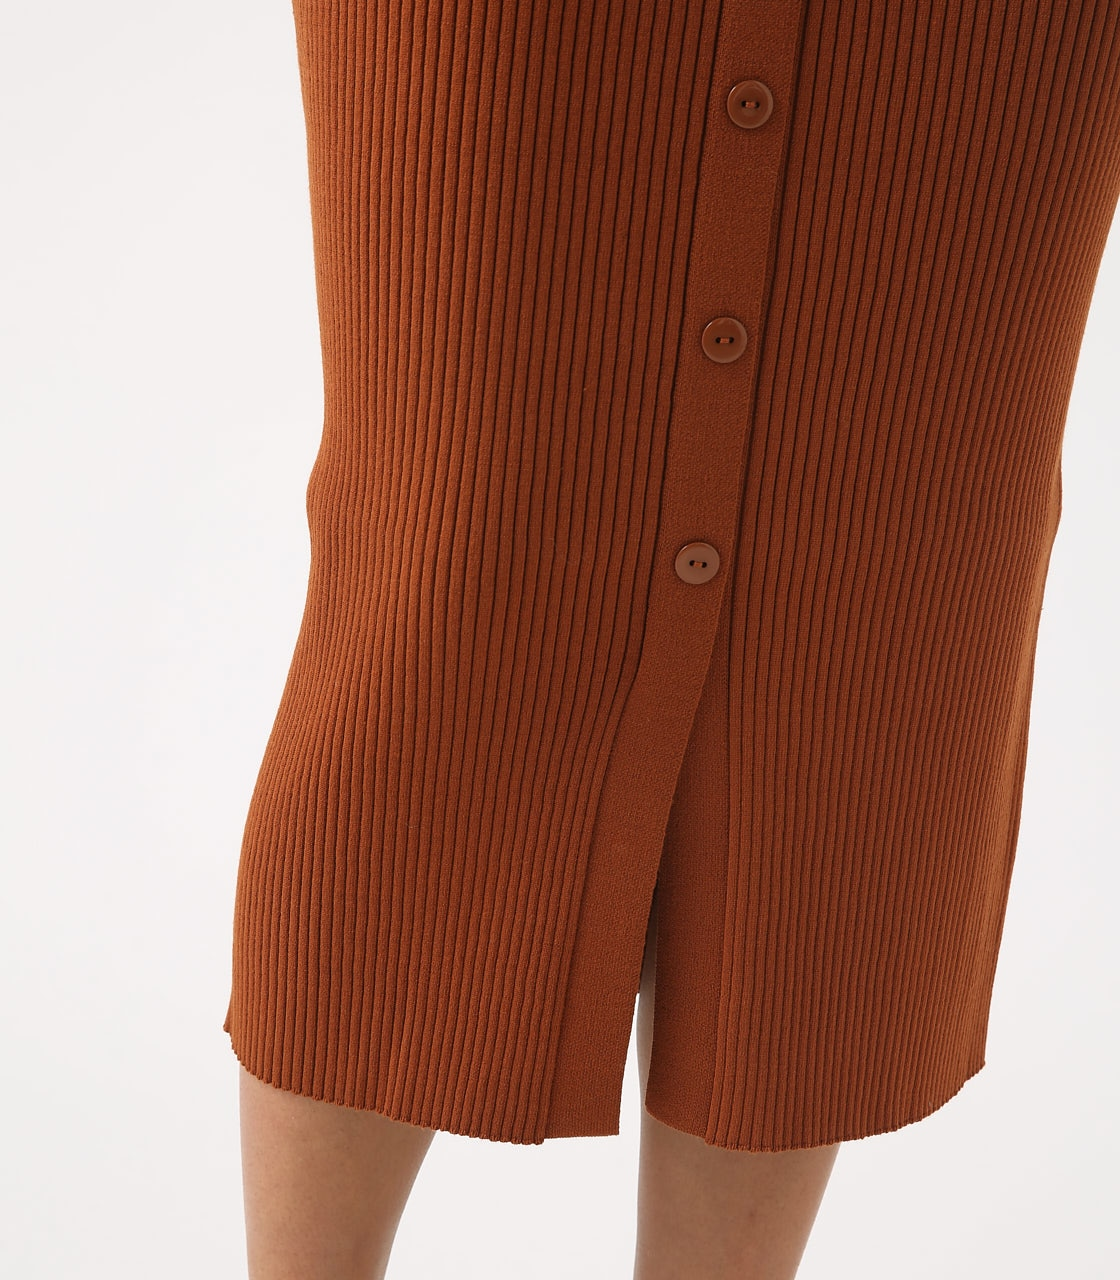 BUTTON RIB KNIT SKIRT 詳細画像 BRN 9